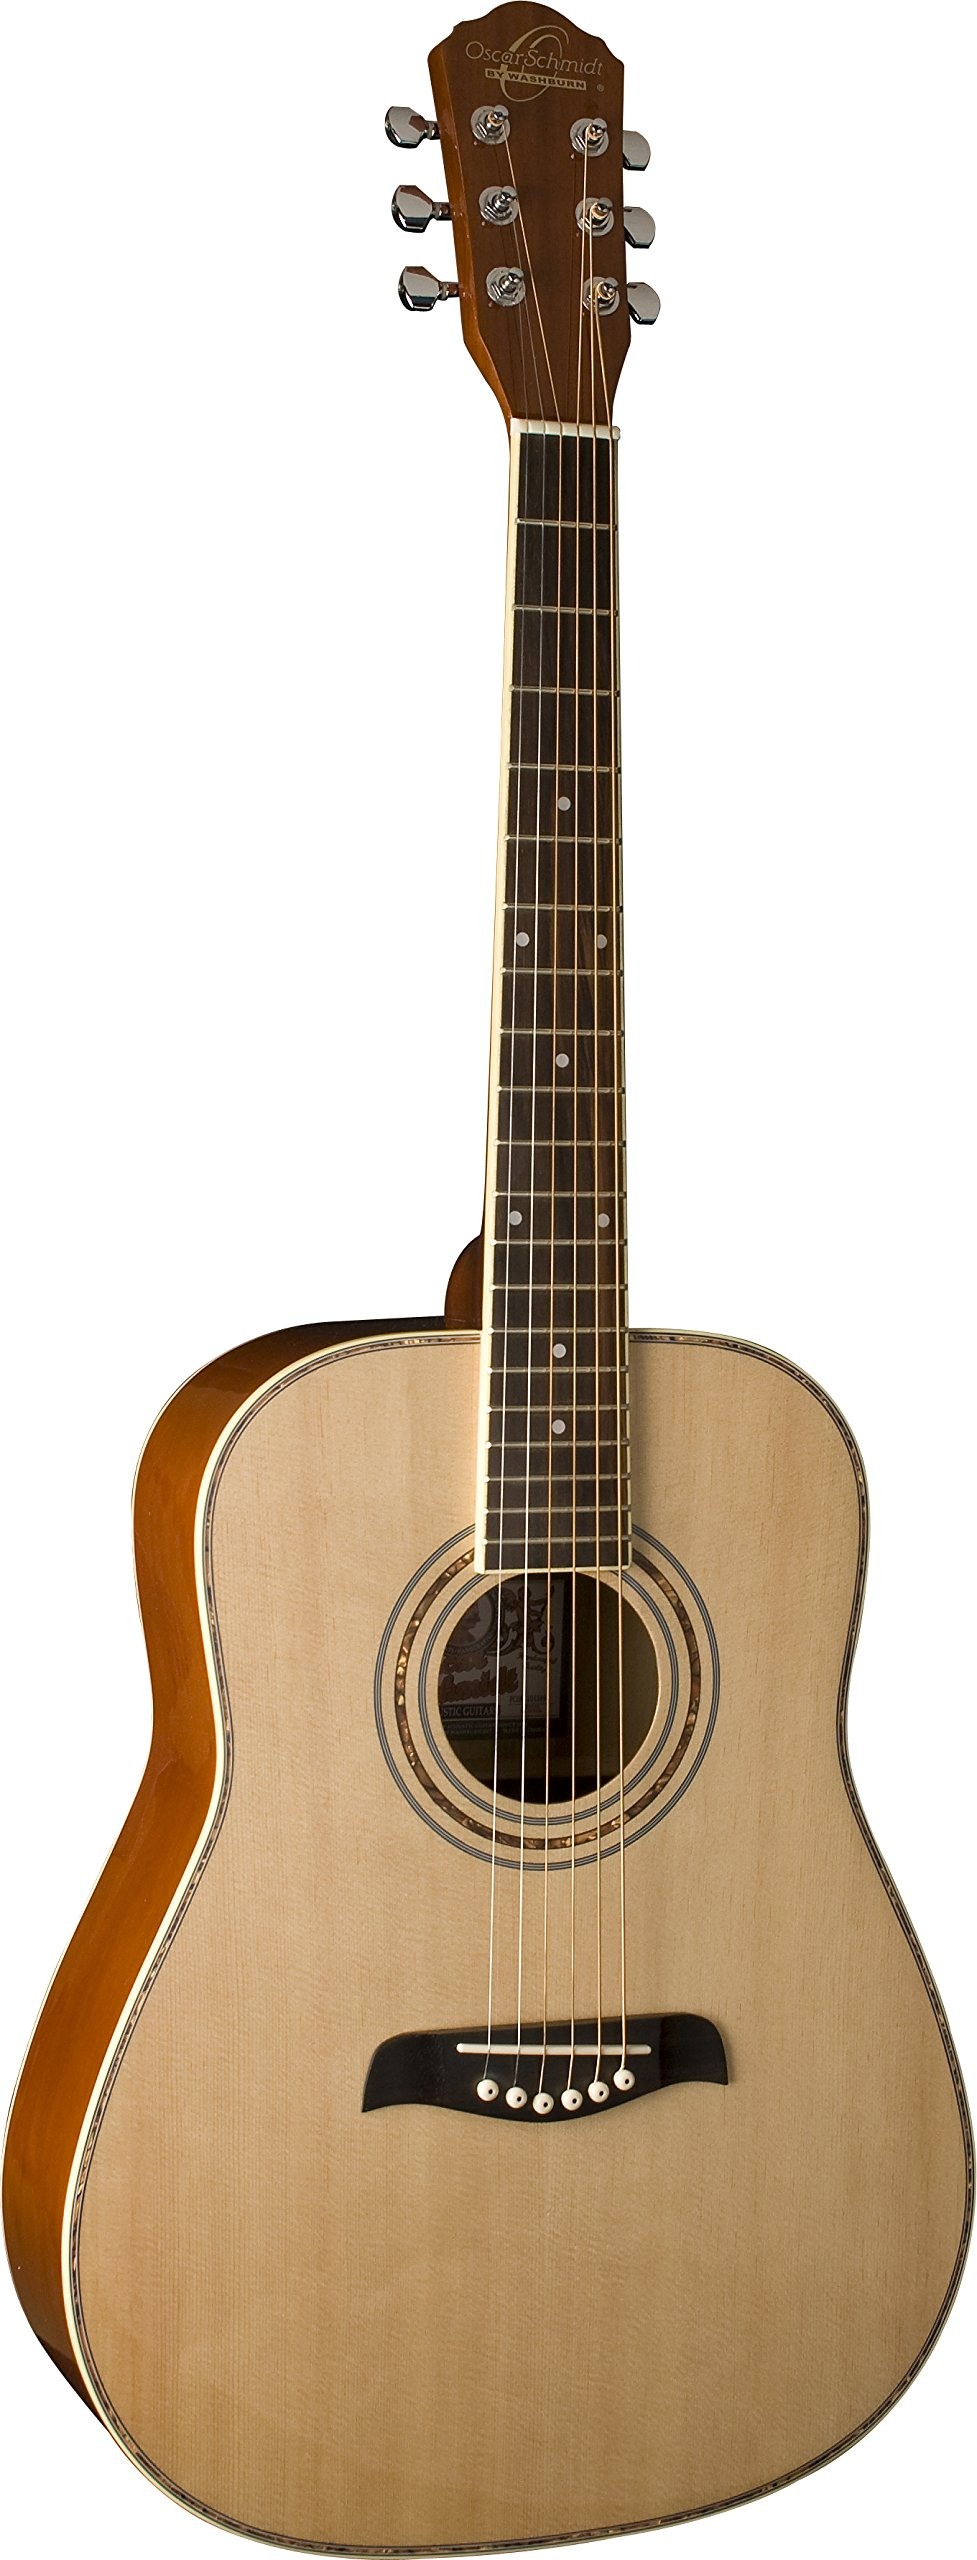 Oscar Schmidt OG1LH-A-U Natural Lefty 3/4 Size Dreadnought Guitar. Left Hand by Oscar Schmidt